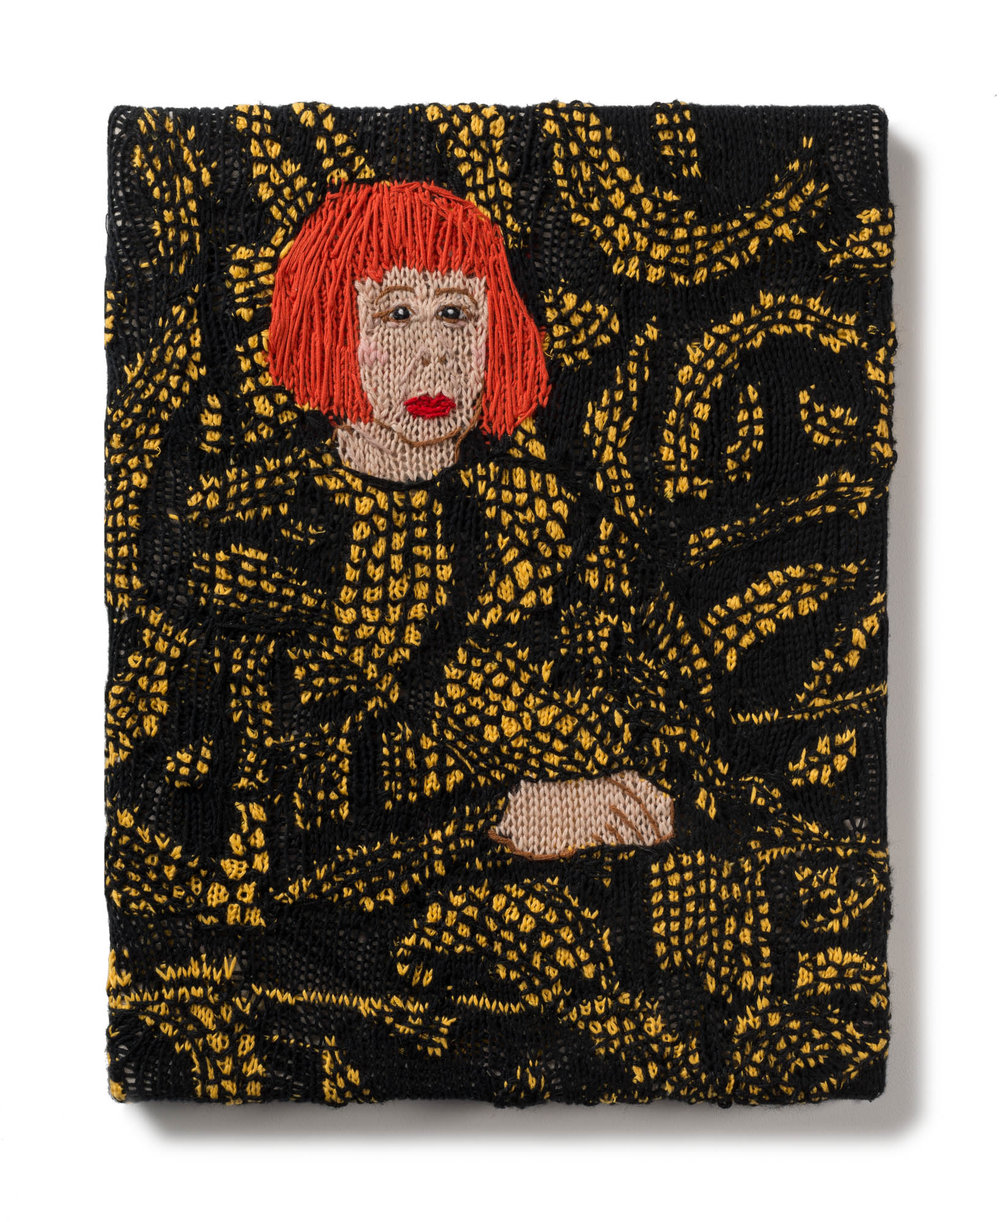 Kate Just, Feminist Fan #29 (Yayoi Kusama, Yayoi Kusama in Yellow Tree Furniture Room at Aich Triennale, Nagoya Japan, 2010), 2016